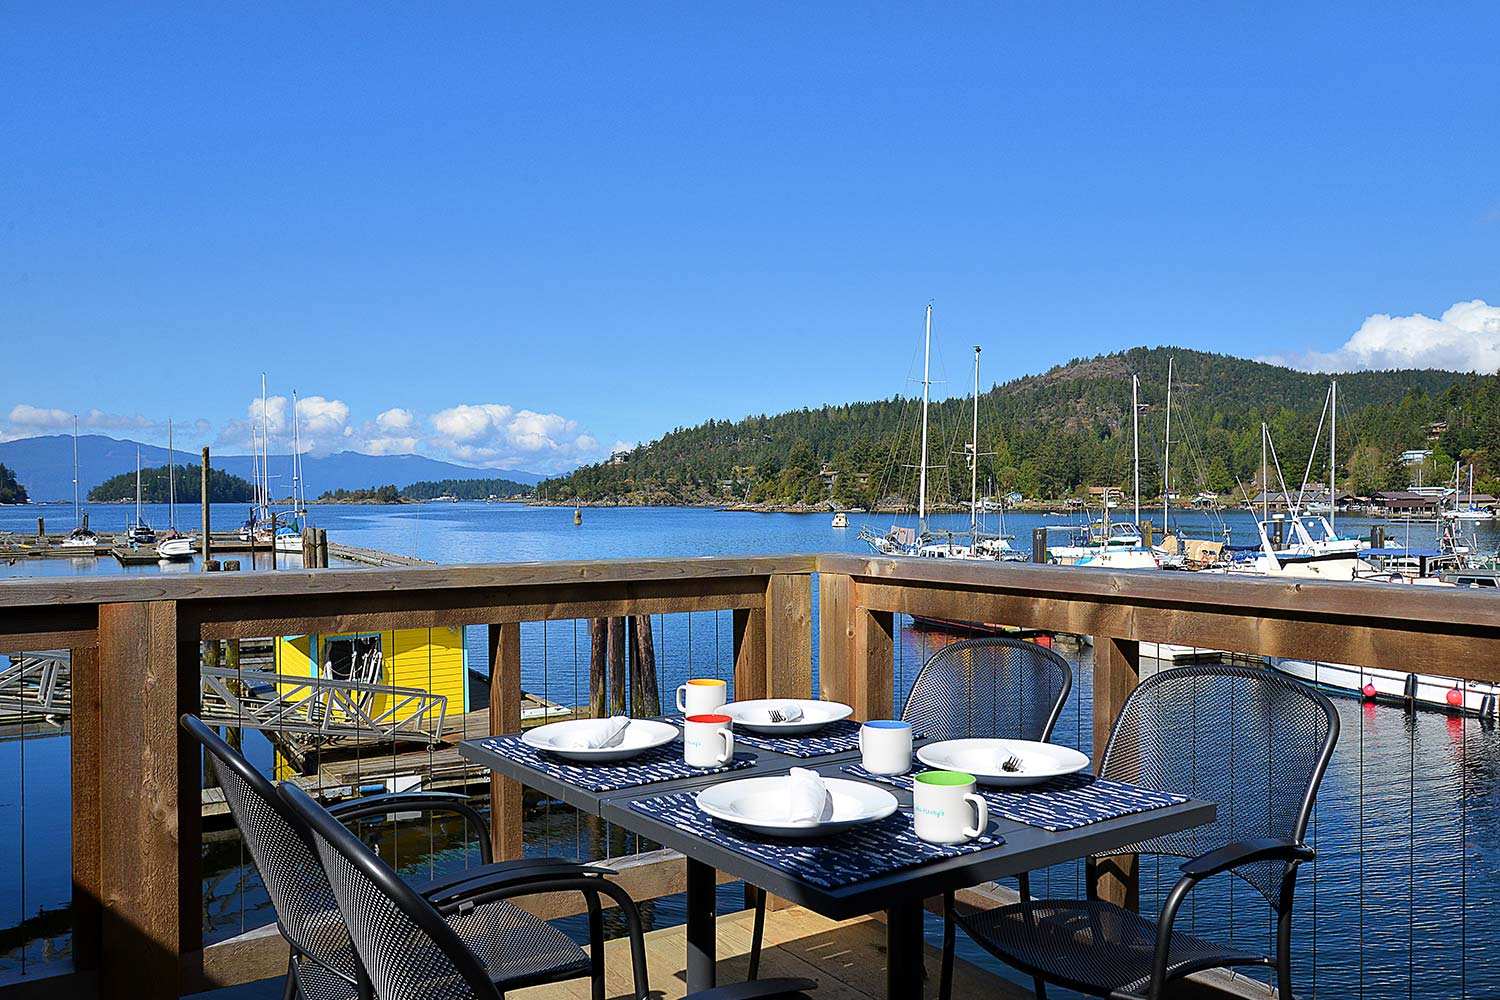 John Henry's Cafe is a marina restaurant with outdoor seating overlooking Pender Harbour, British Columbia.